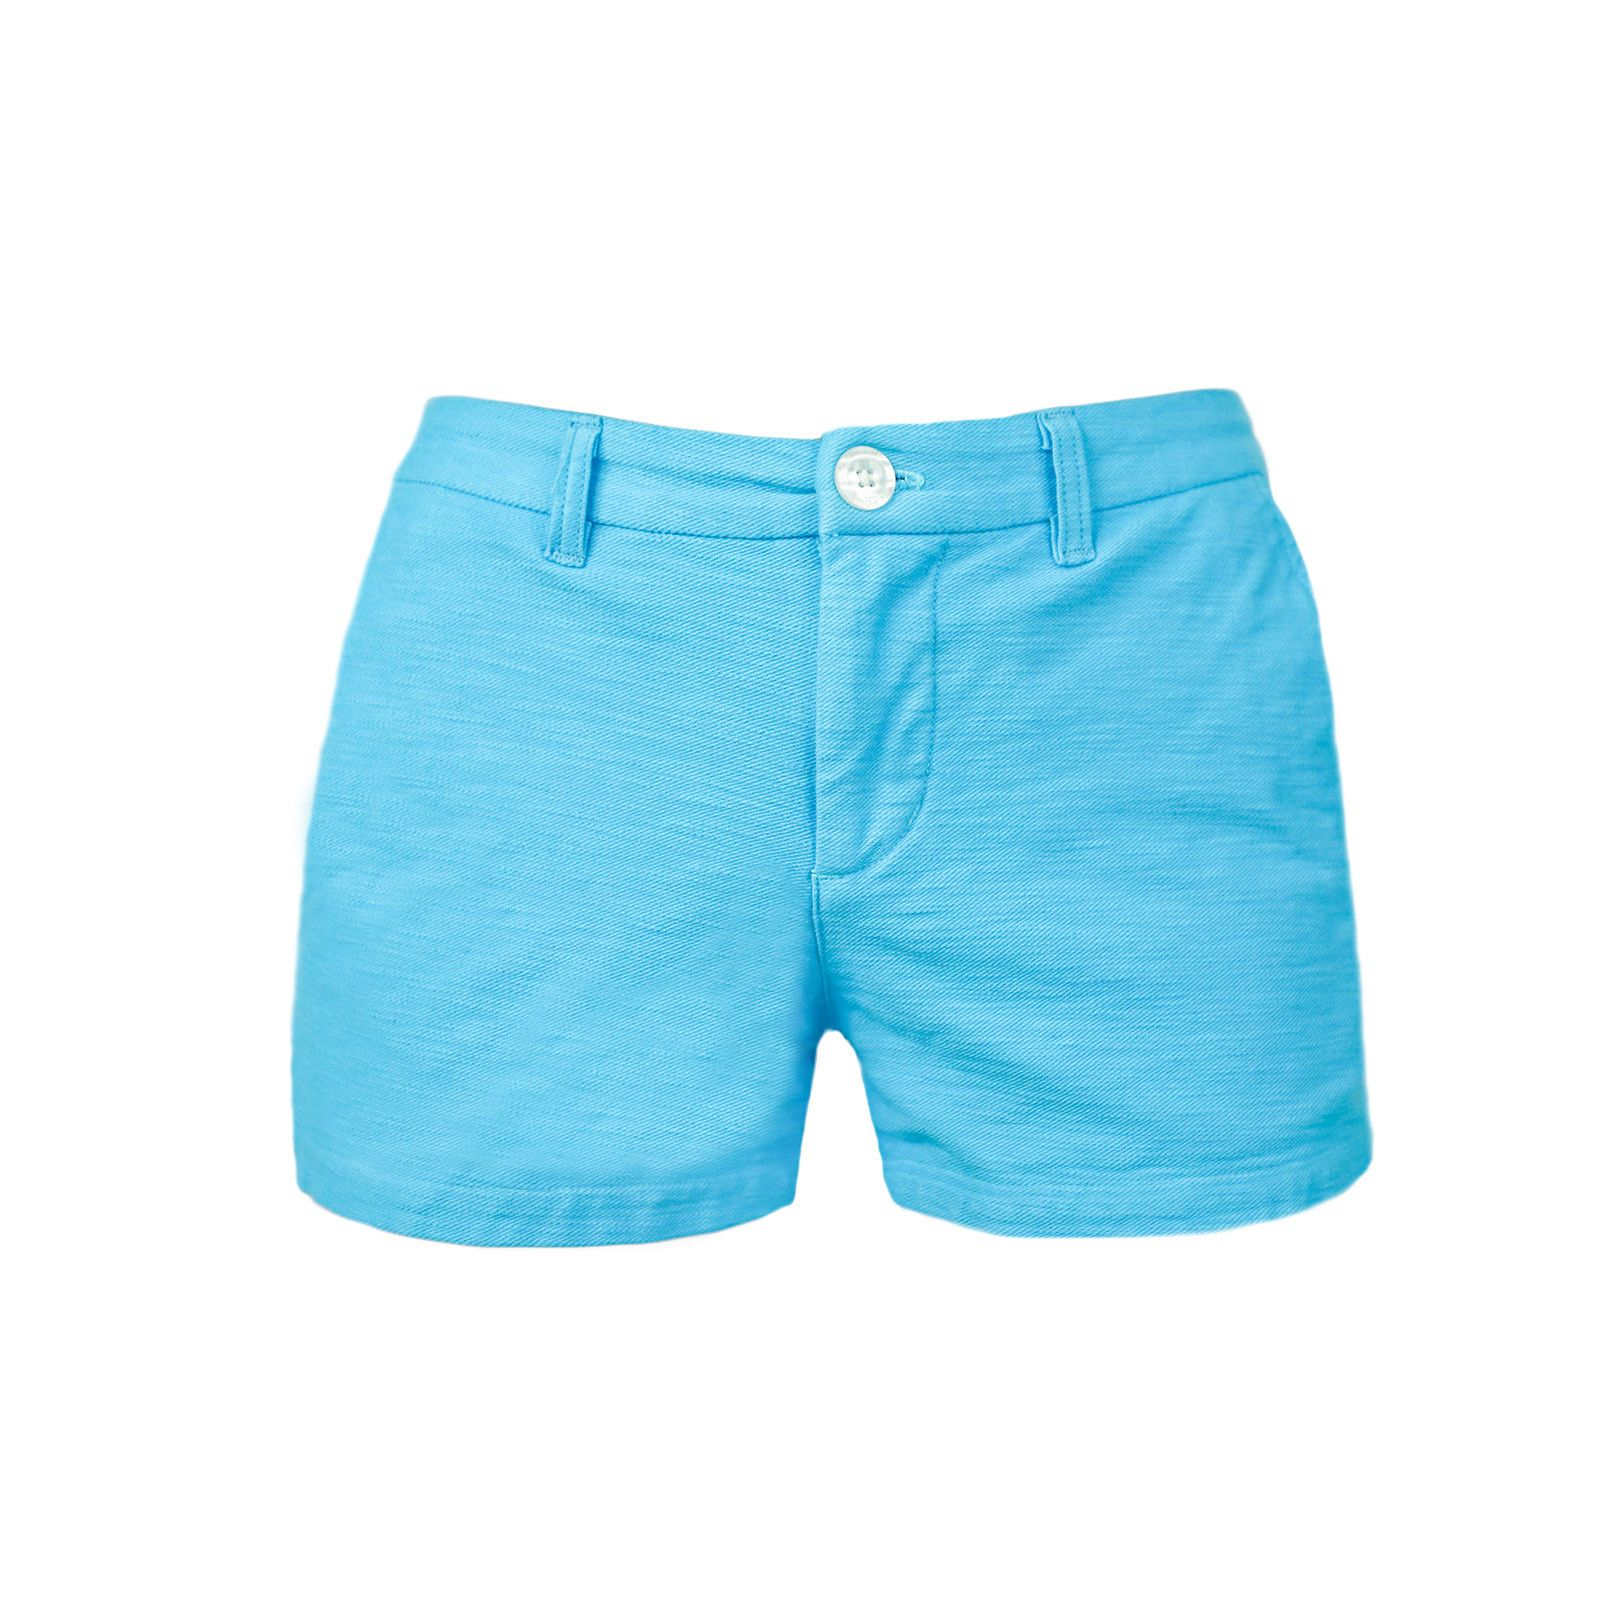 The Baby Blues   Light blue shorts, Baby blue and Blue shorts